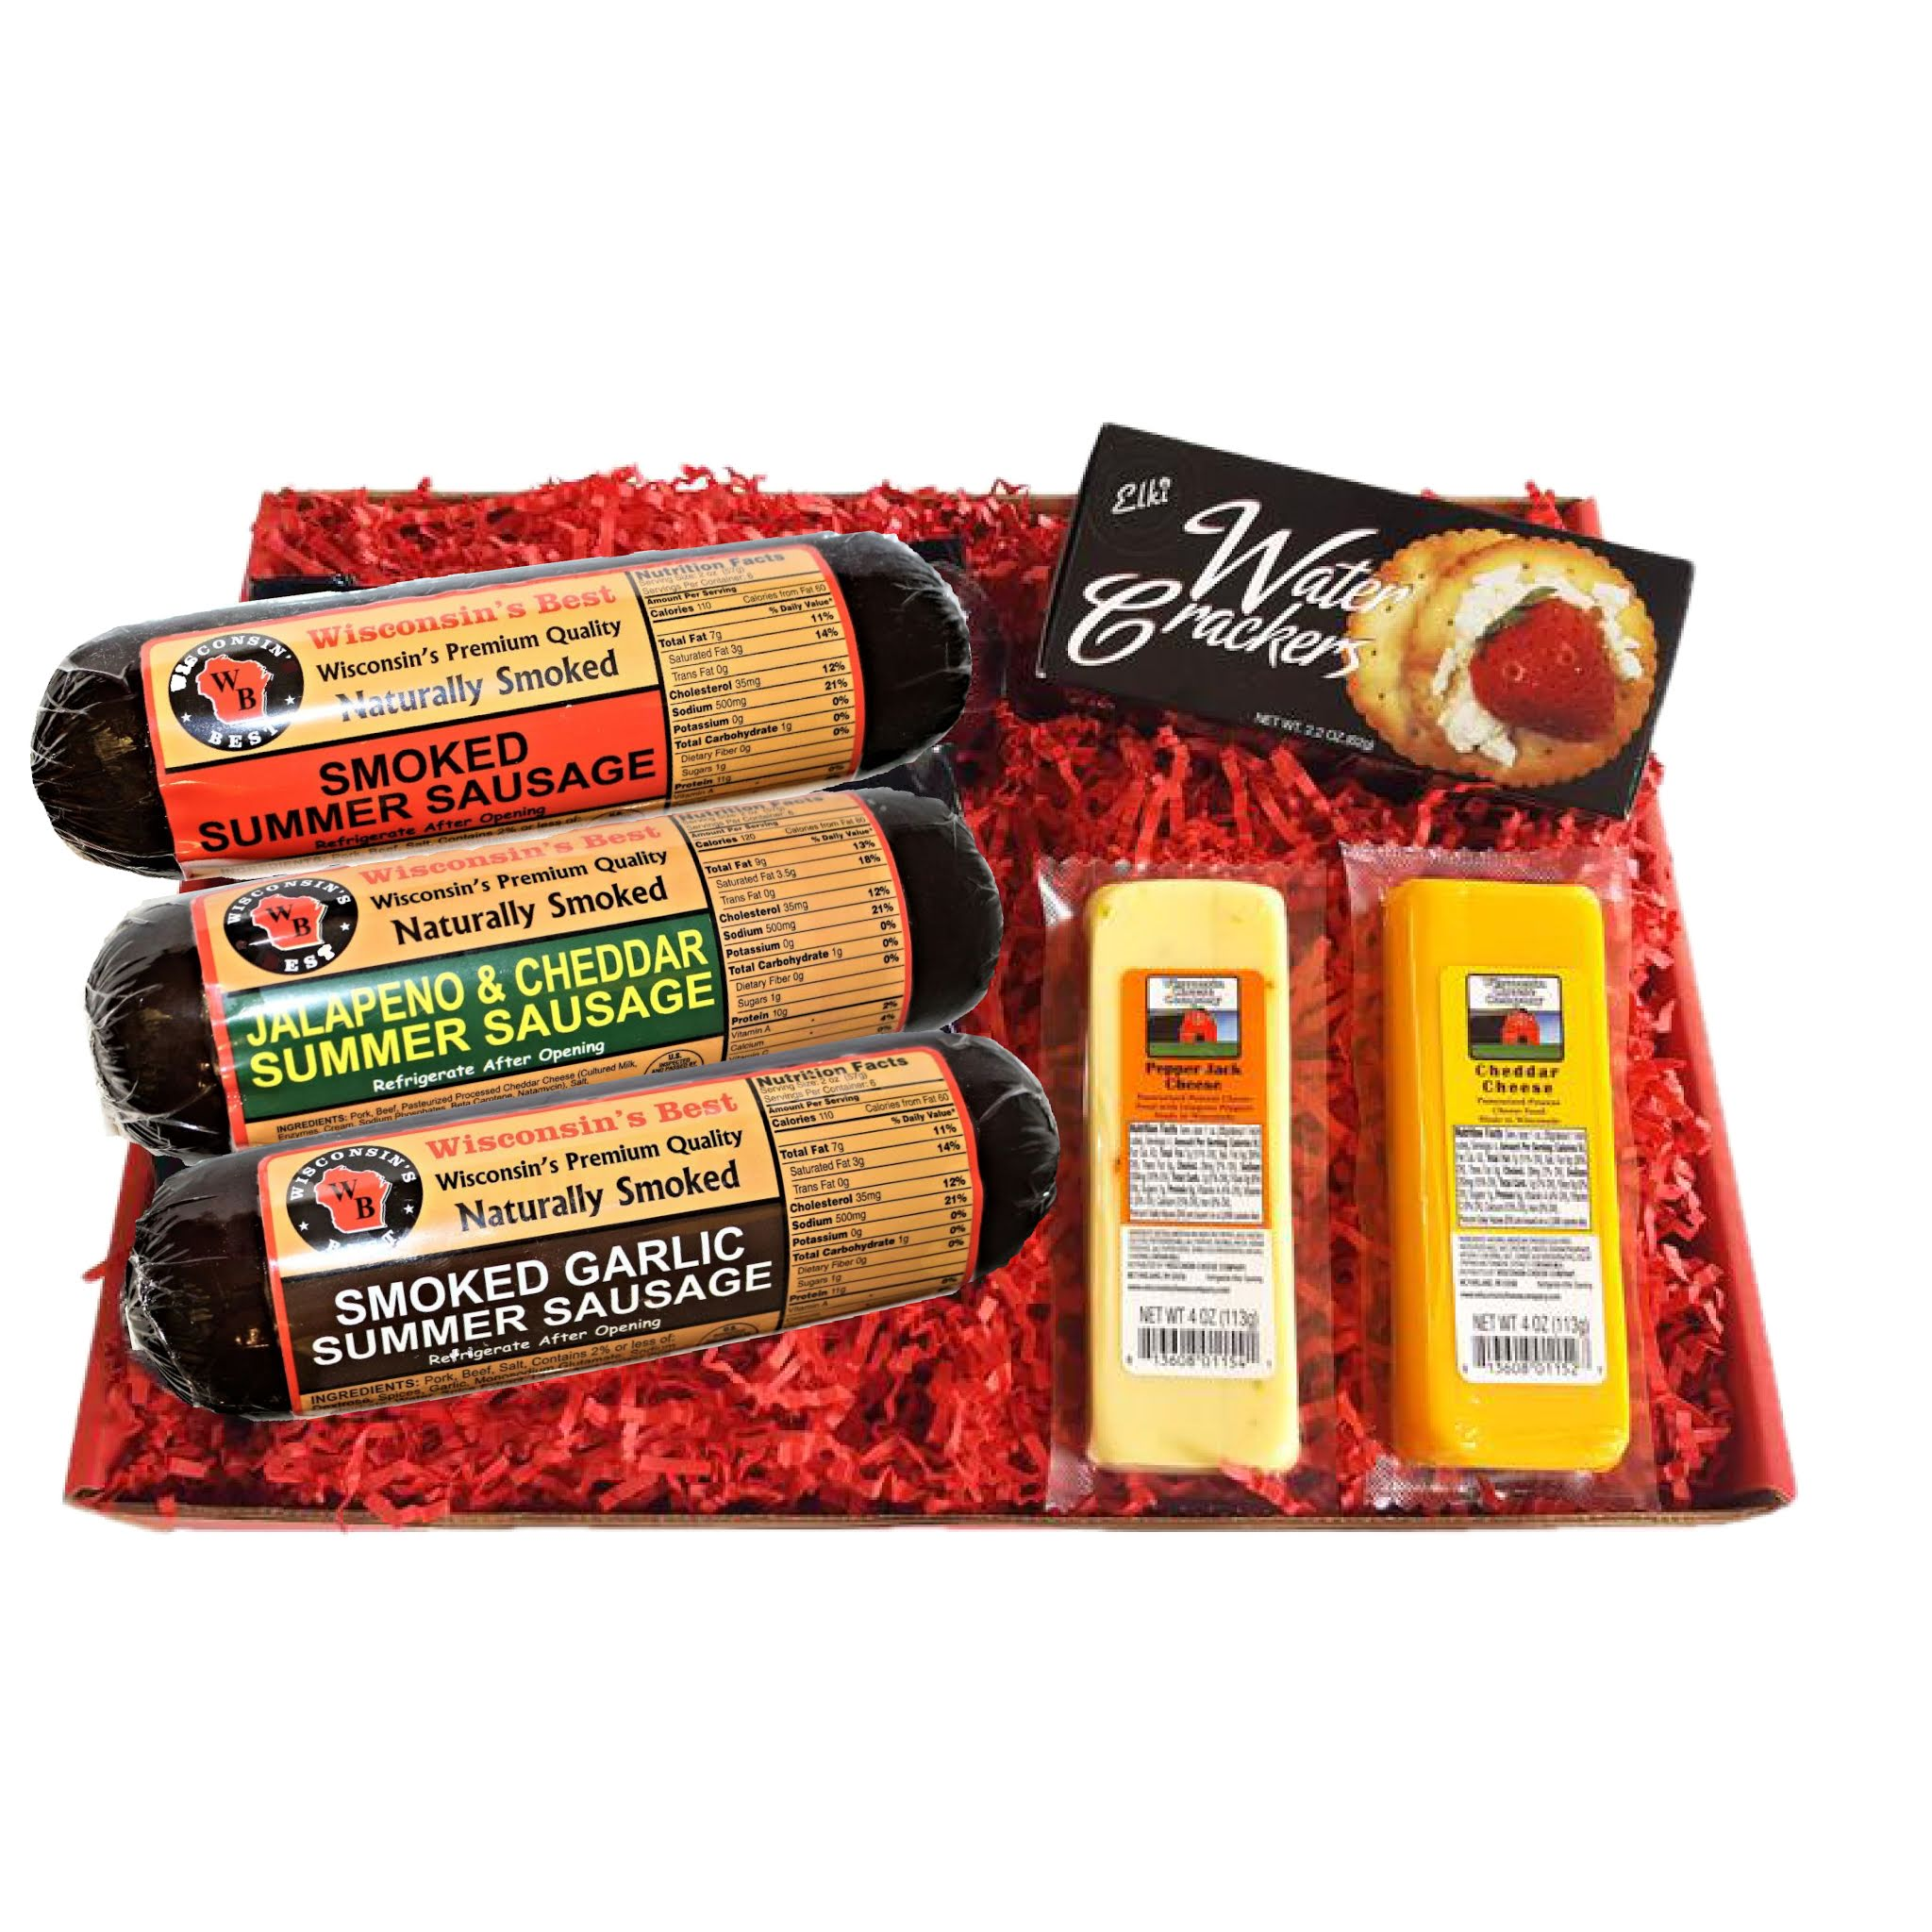 wisconsin's best snacker gift basket with cheeses and summer sausages made in wisconsin, 6 pc